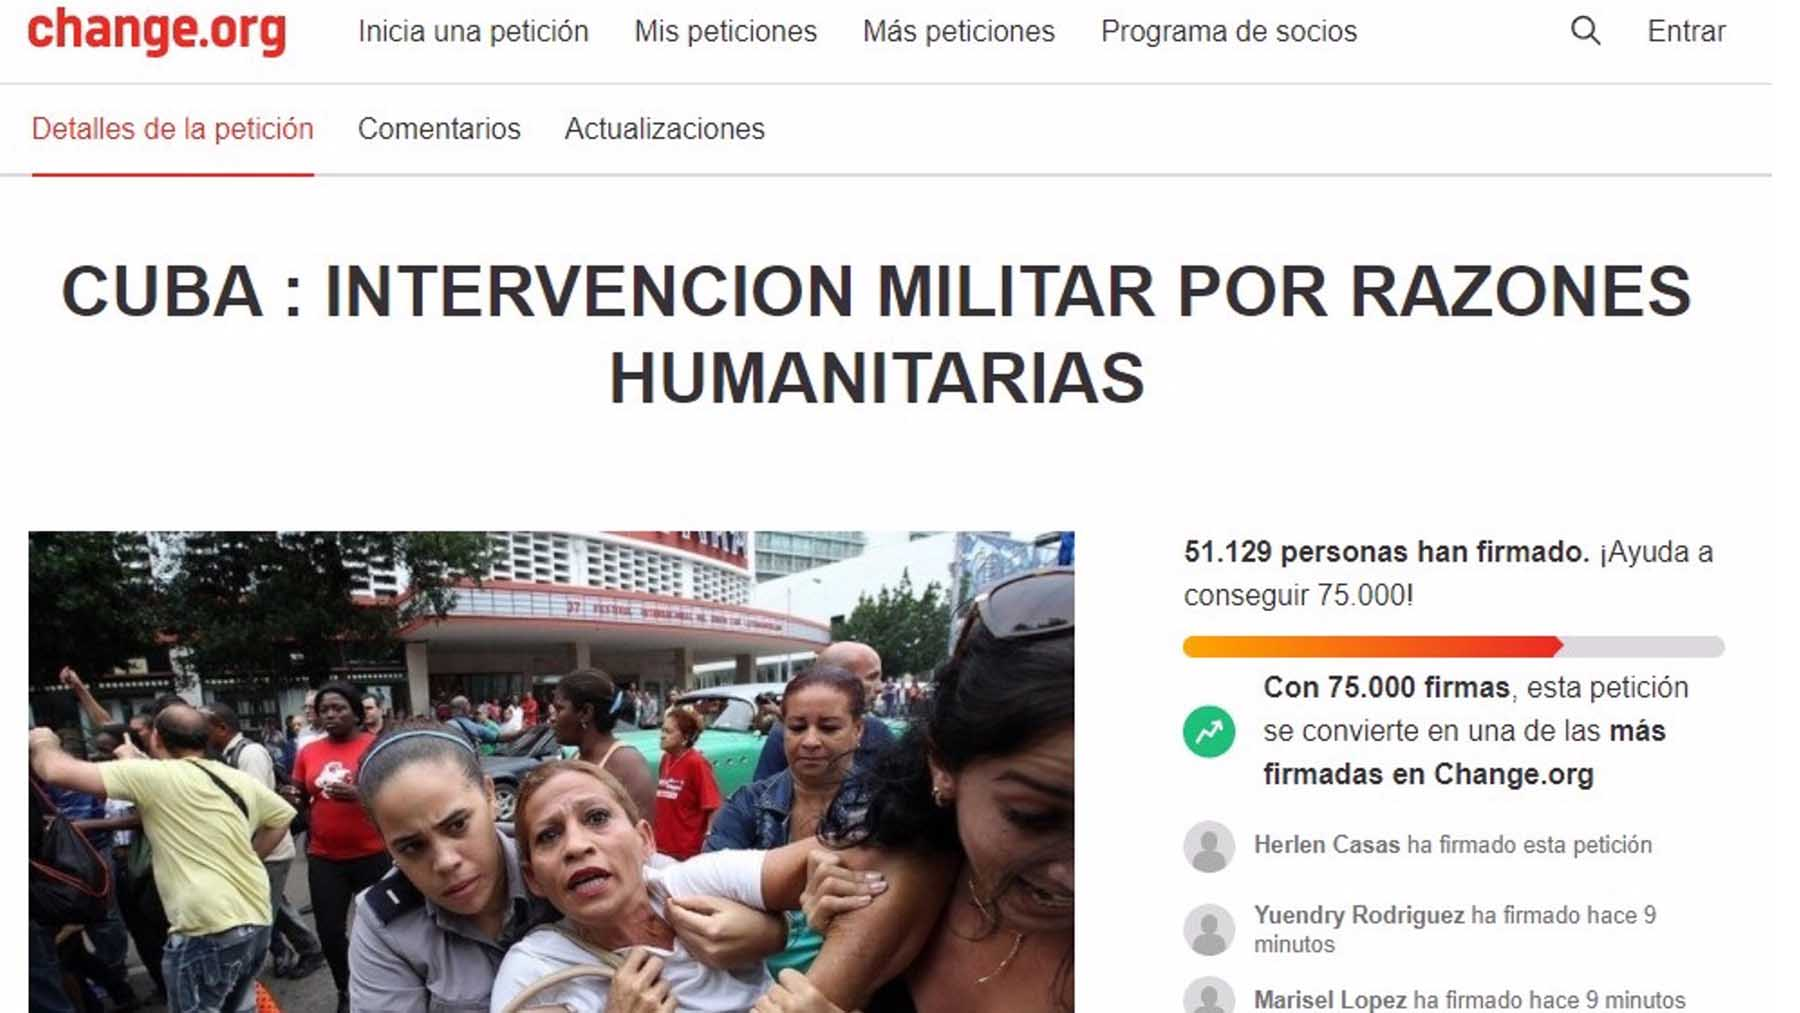 More than 50,000 people call for a US military intervention in Cuba